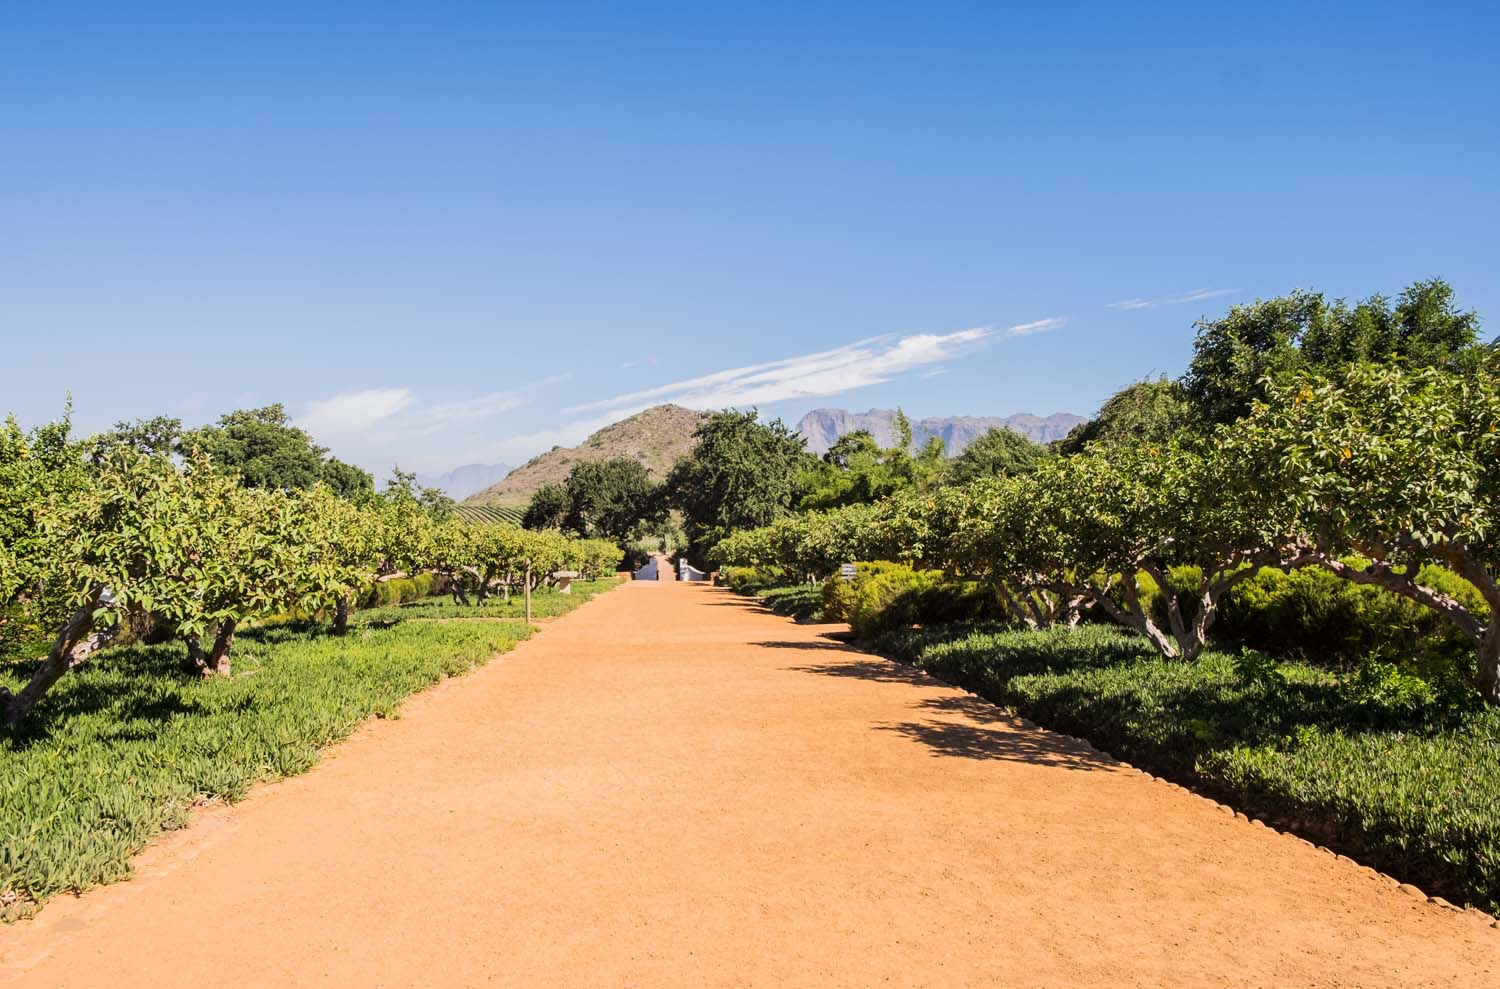 A rule says: if you come to Cape Town & the Winelands you have to drink wine. All about Babylonstoren, my favorite place for wine tasting in Stellenbosch & why you should go there.